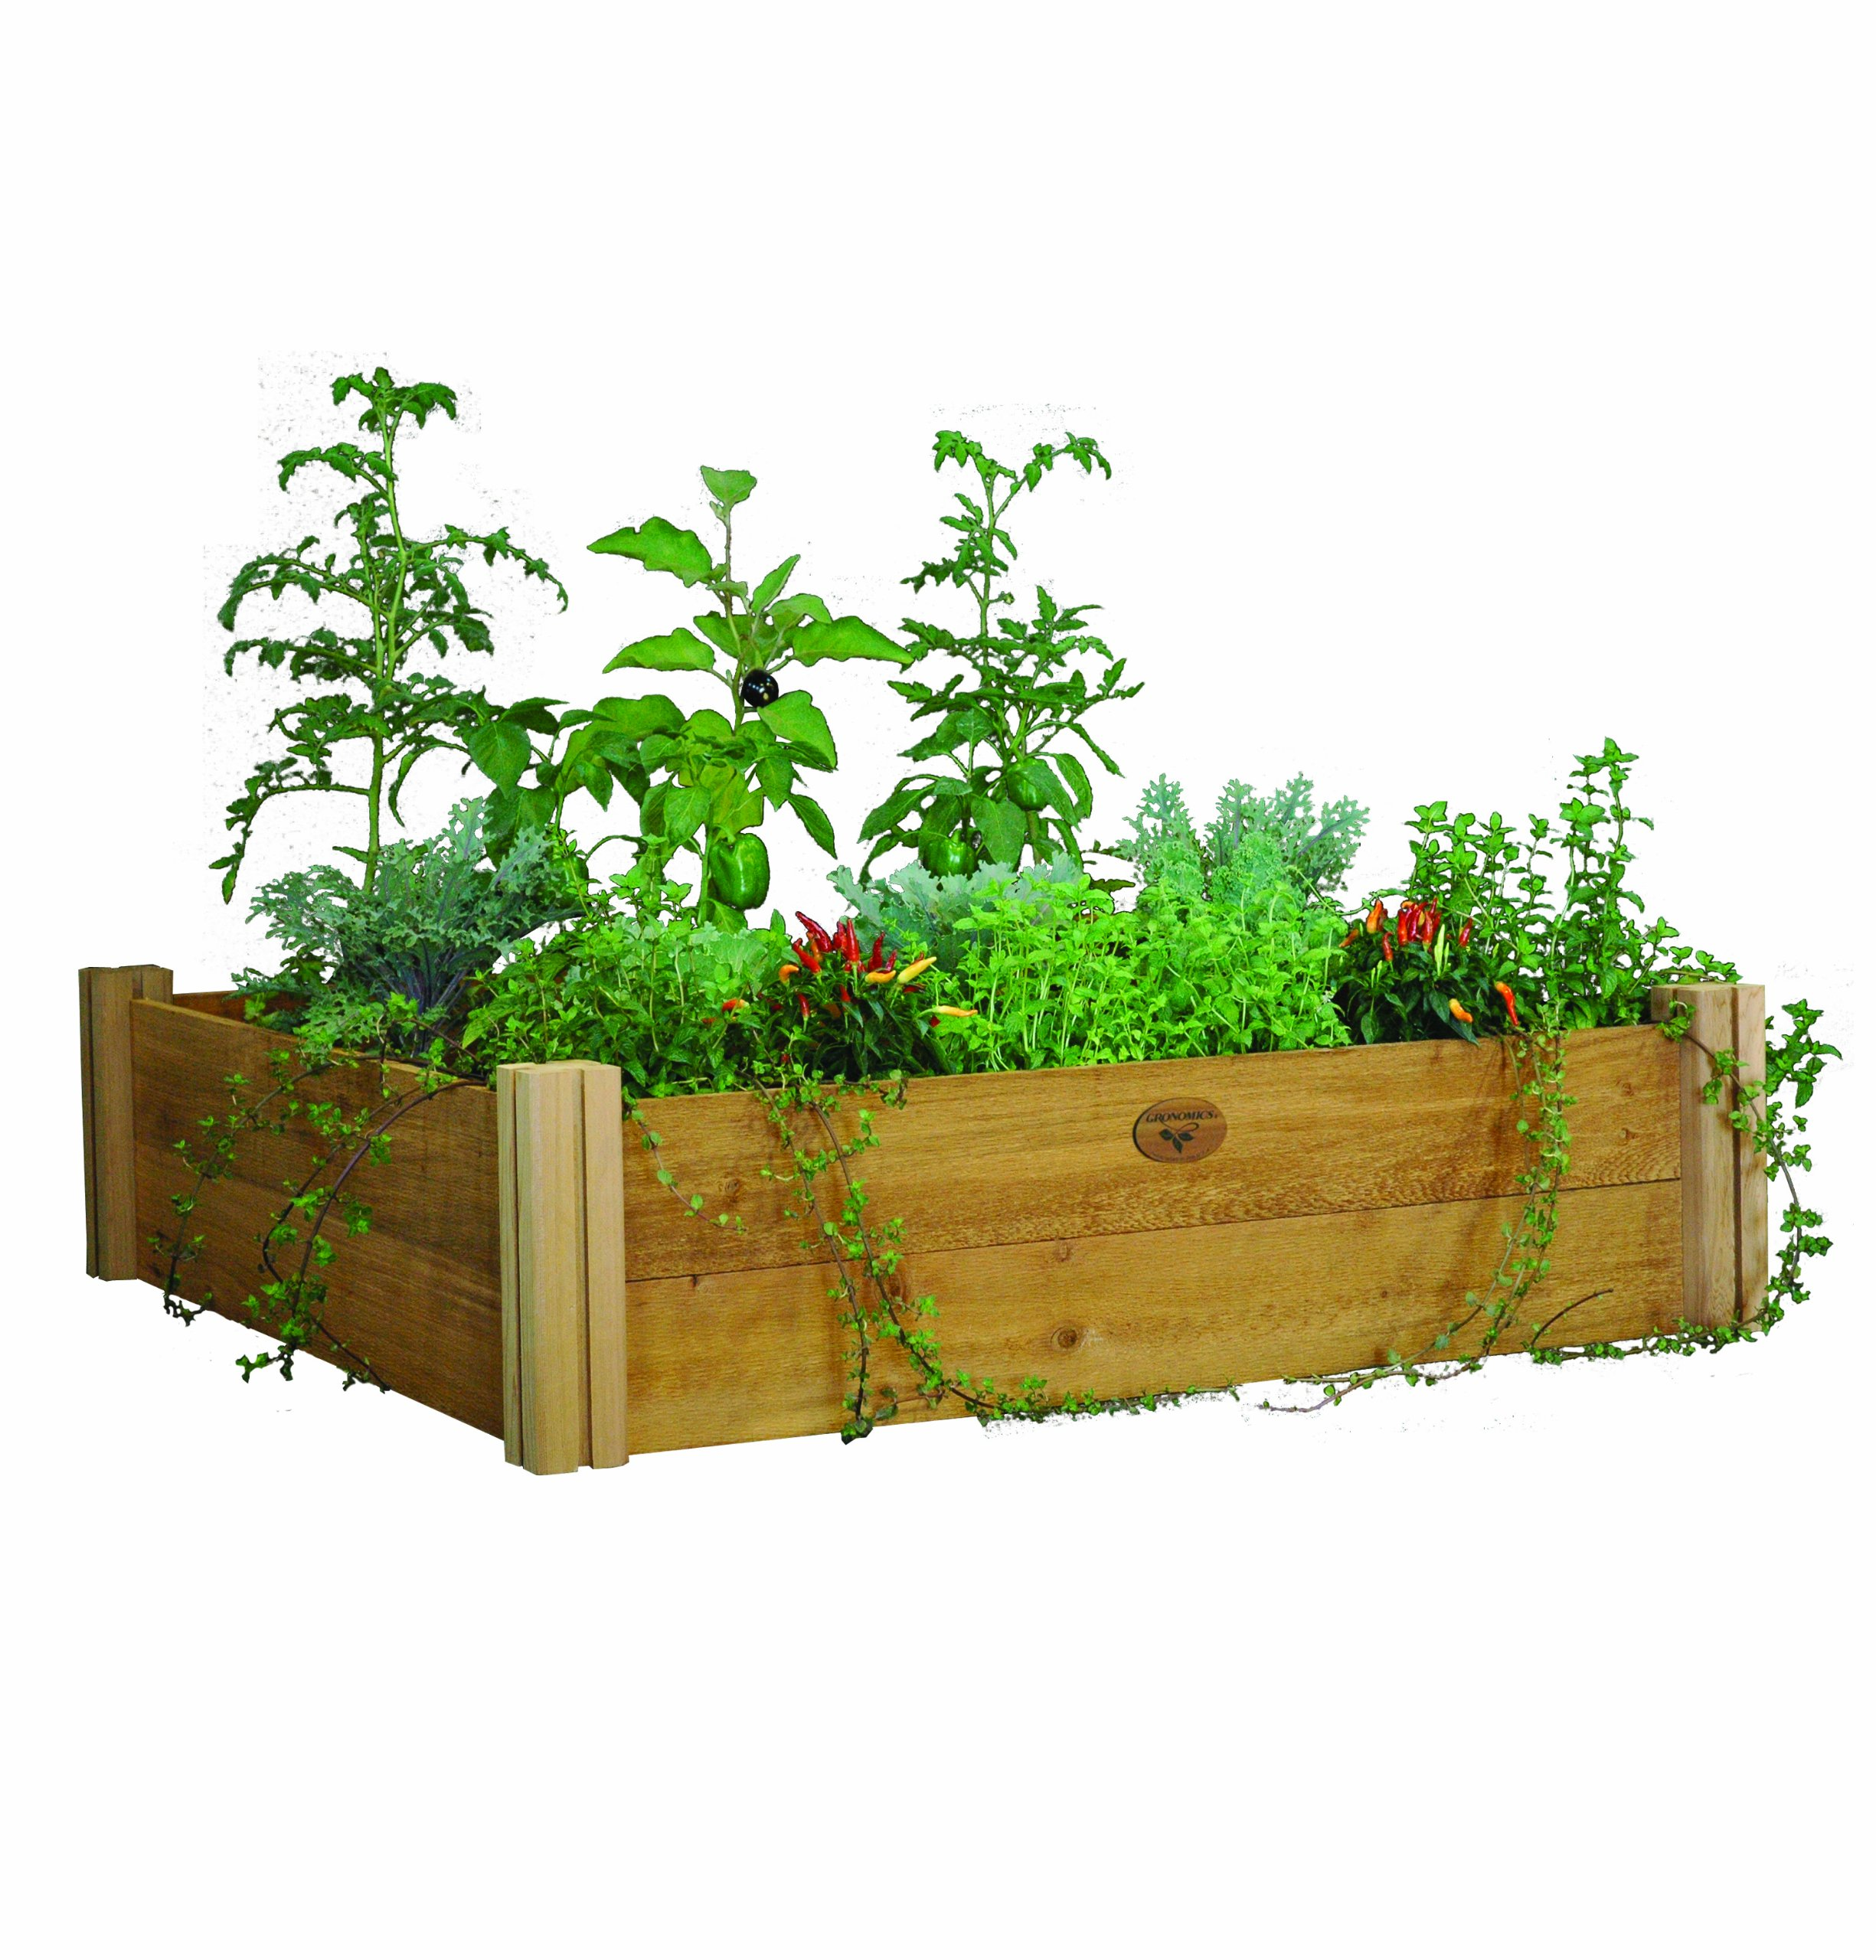 raiseds raised beds diy make series them tos a resist garden to how and now gronomics bed img whimsical grange rustic grow